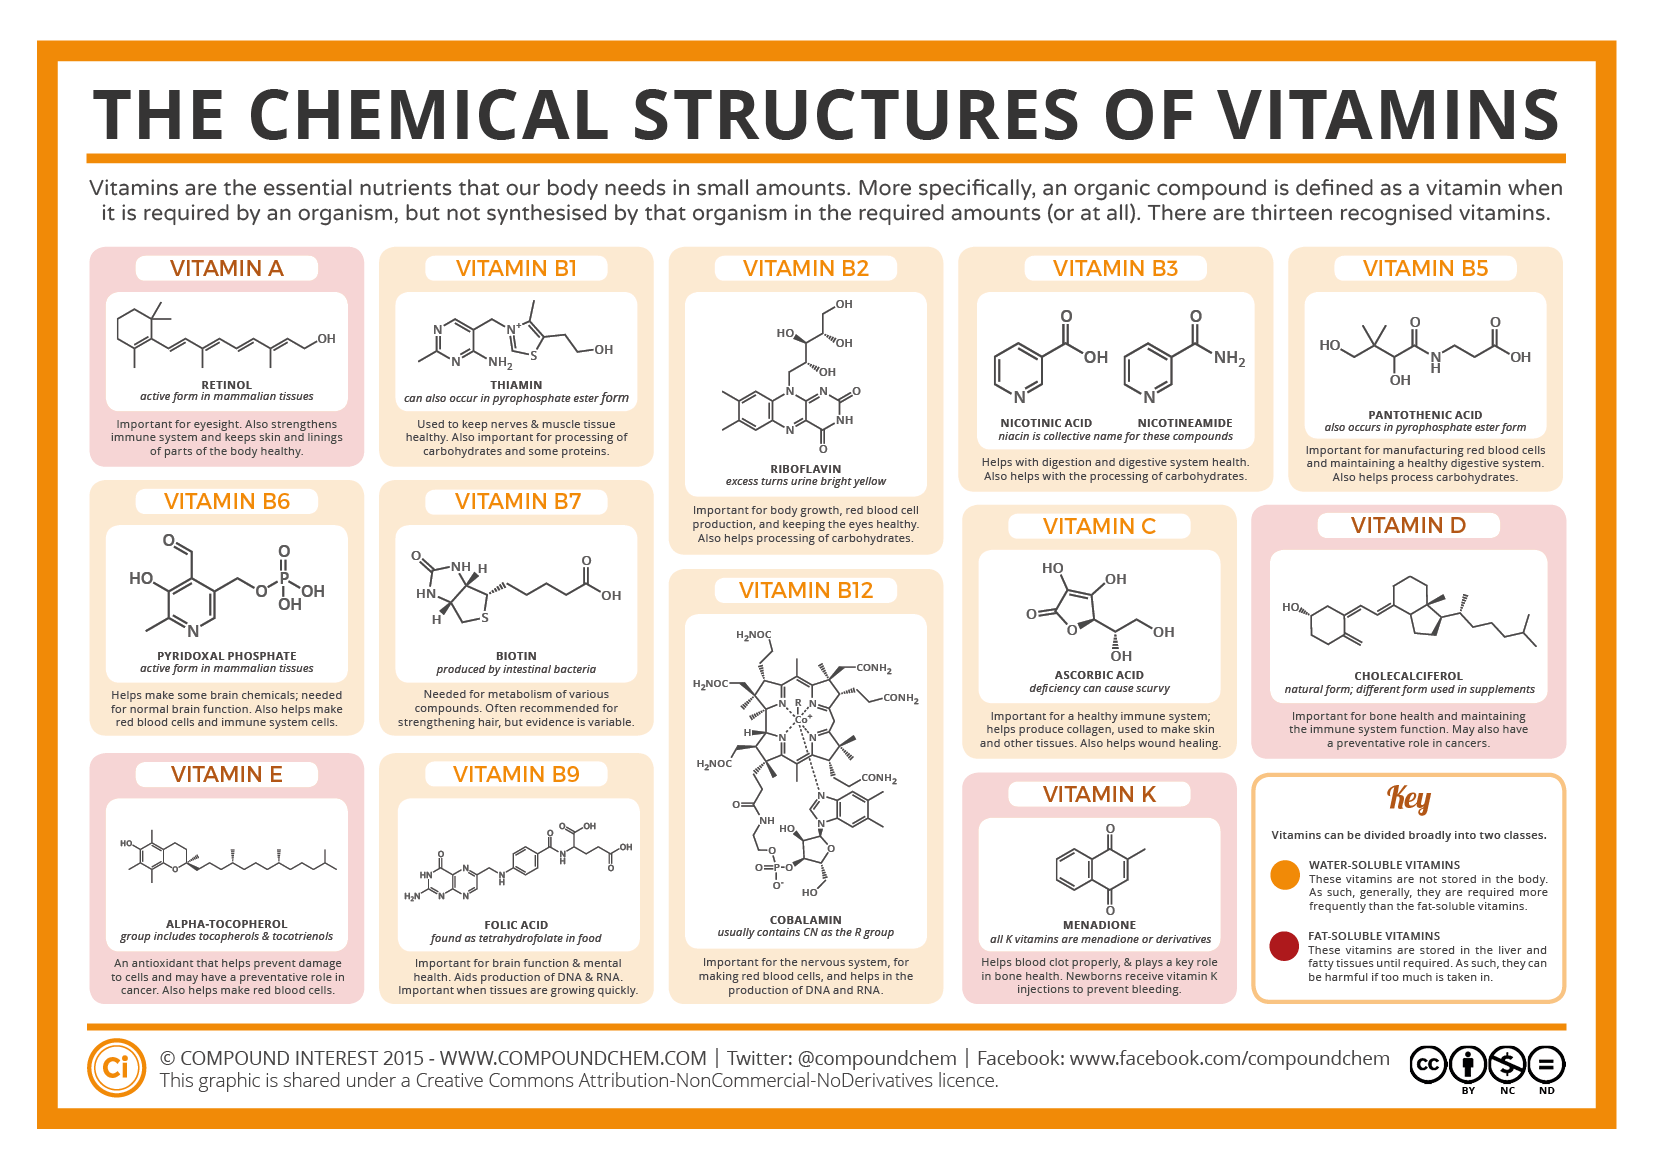 The Chemical Structures of Vitamins | Compound Interest